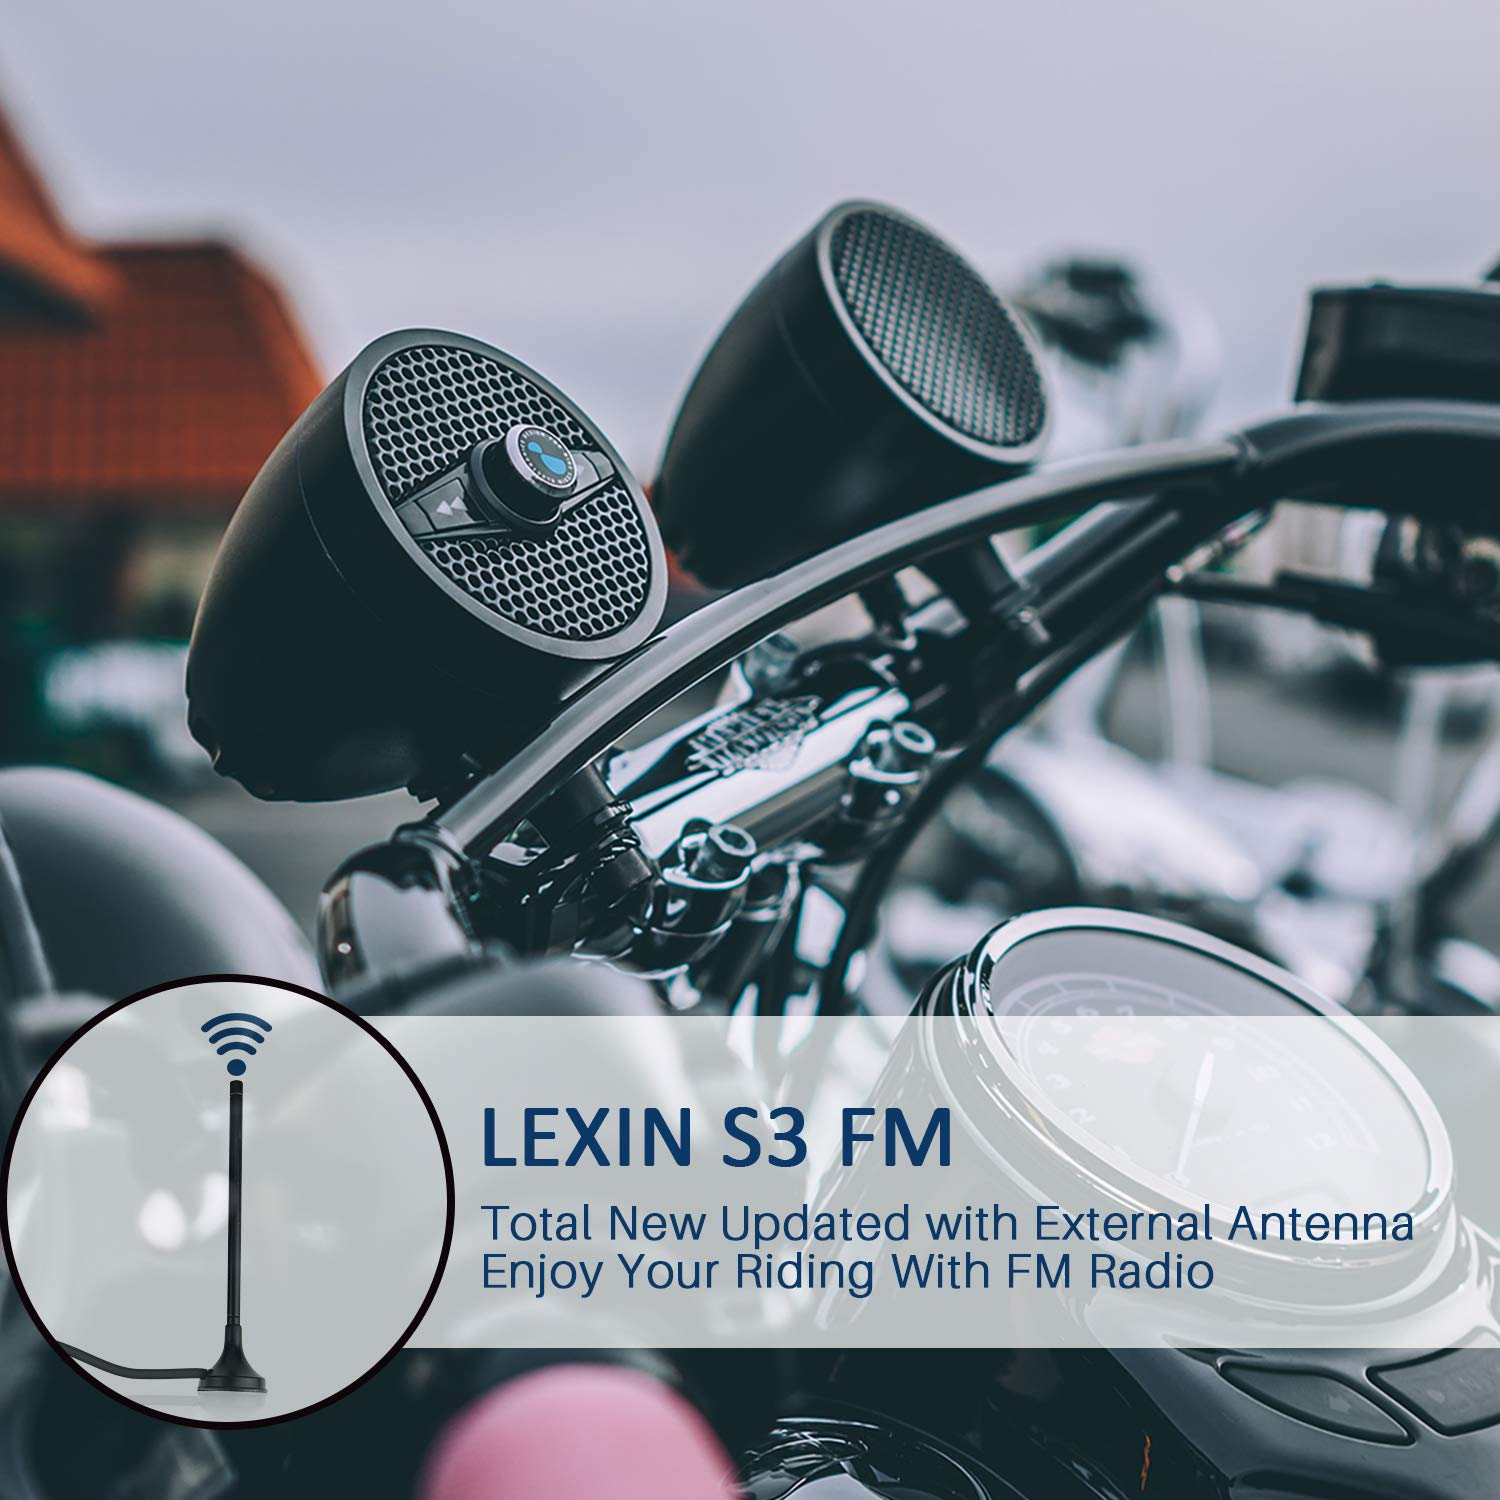 Black 4350351779 Fit 7//8 to 1.25 Handlebar For Harley-Davidson//Yamaha//Indian Scout Motorcycle Audio Systems With USB Port for Charing LEXIN New Metal Motorcycle Bluetooth Speaker With FM Radio